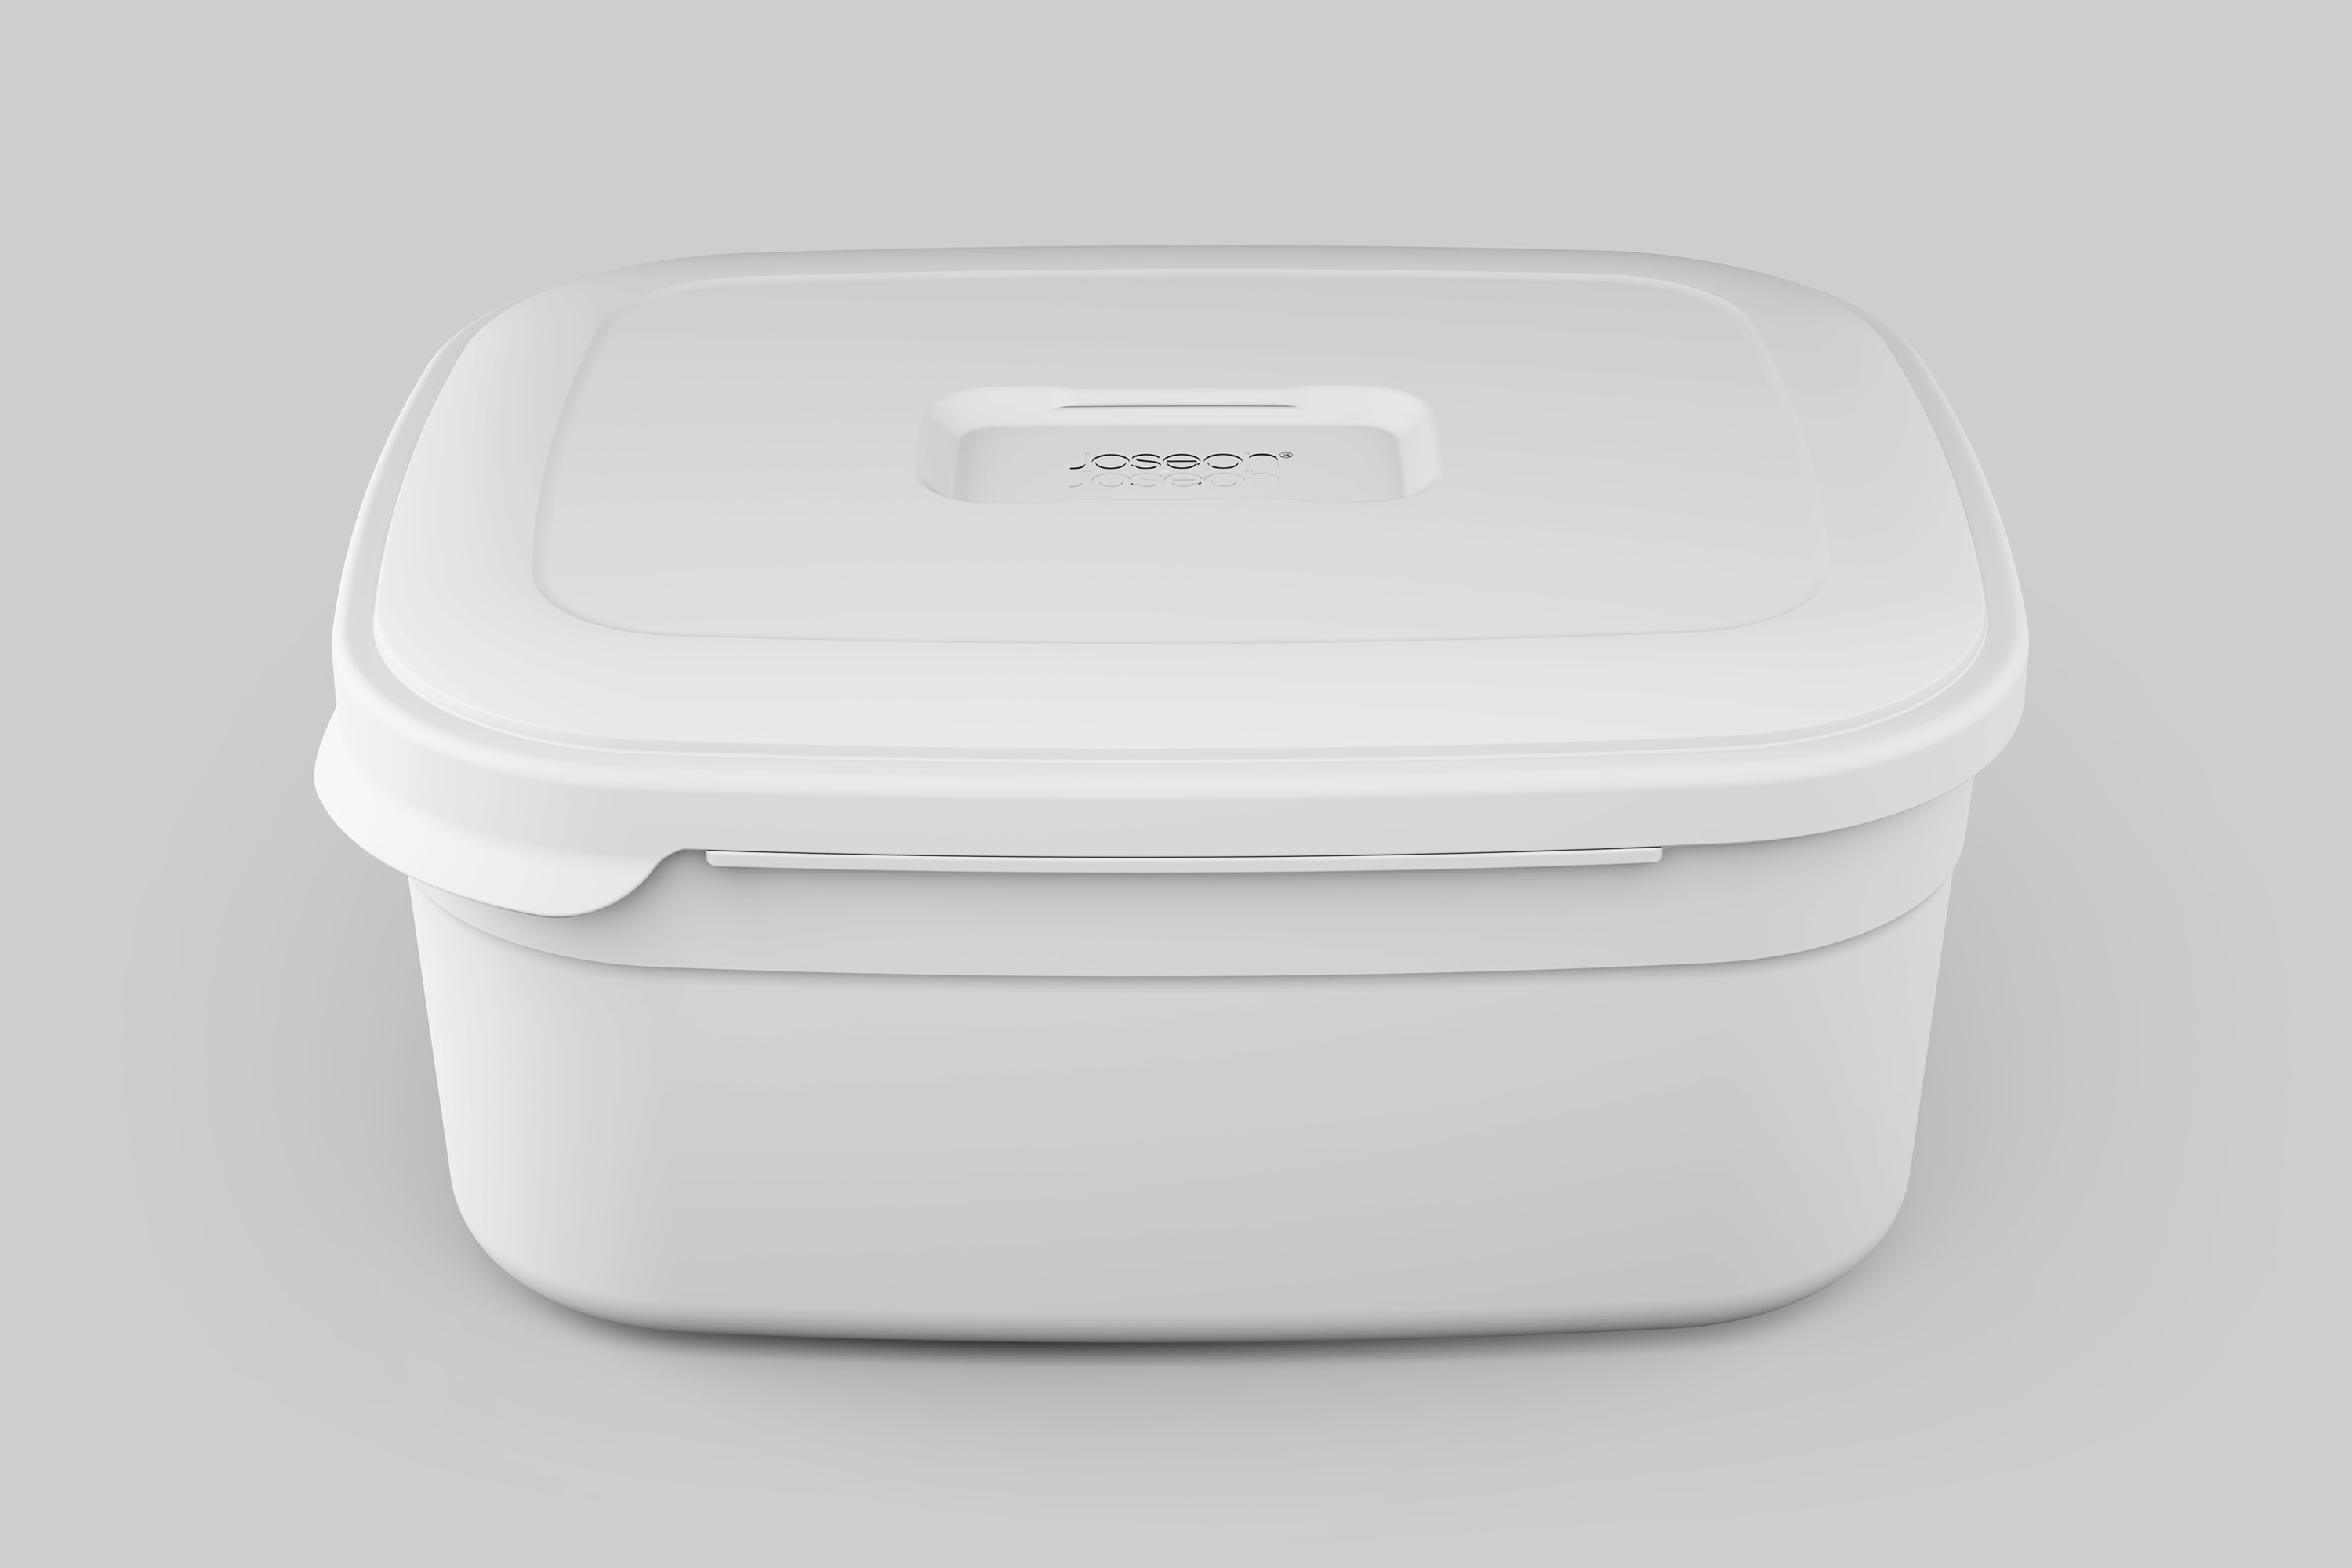 Front view of the JosephJoseph box, greyscale render.